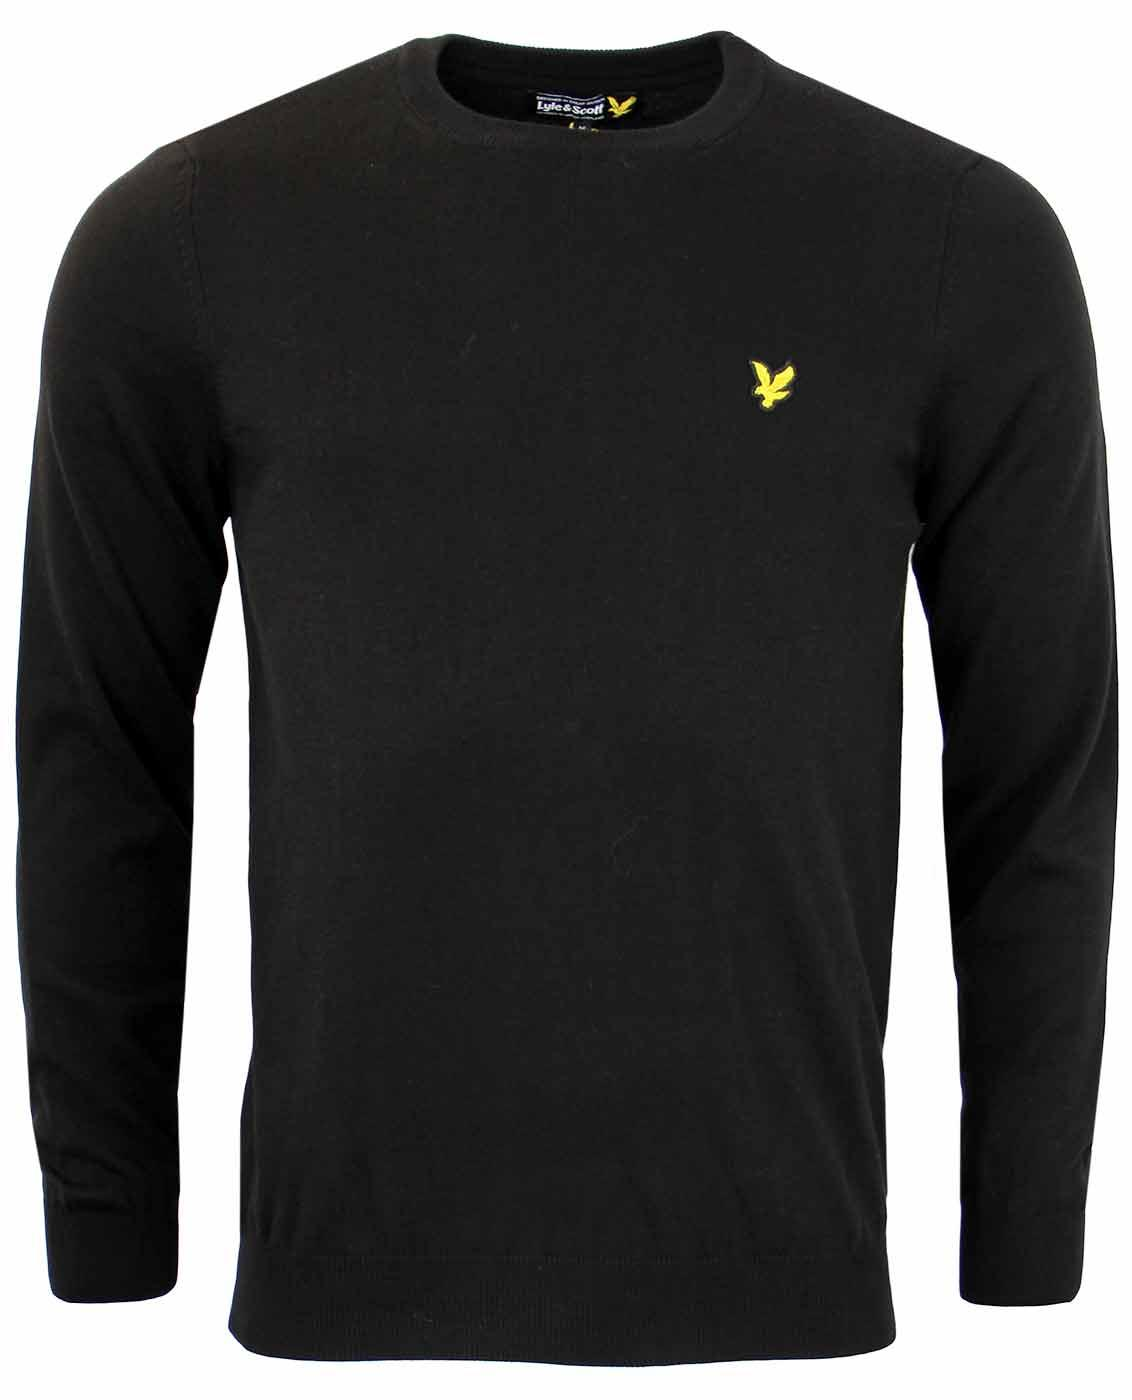 LYLE & SCOTT Retro Mod Cotton Crew Neck Jumper TB